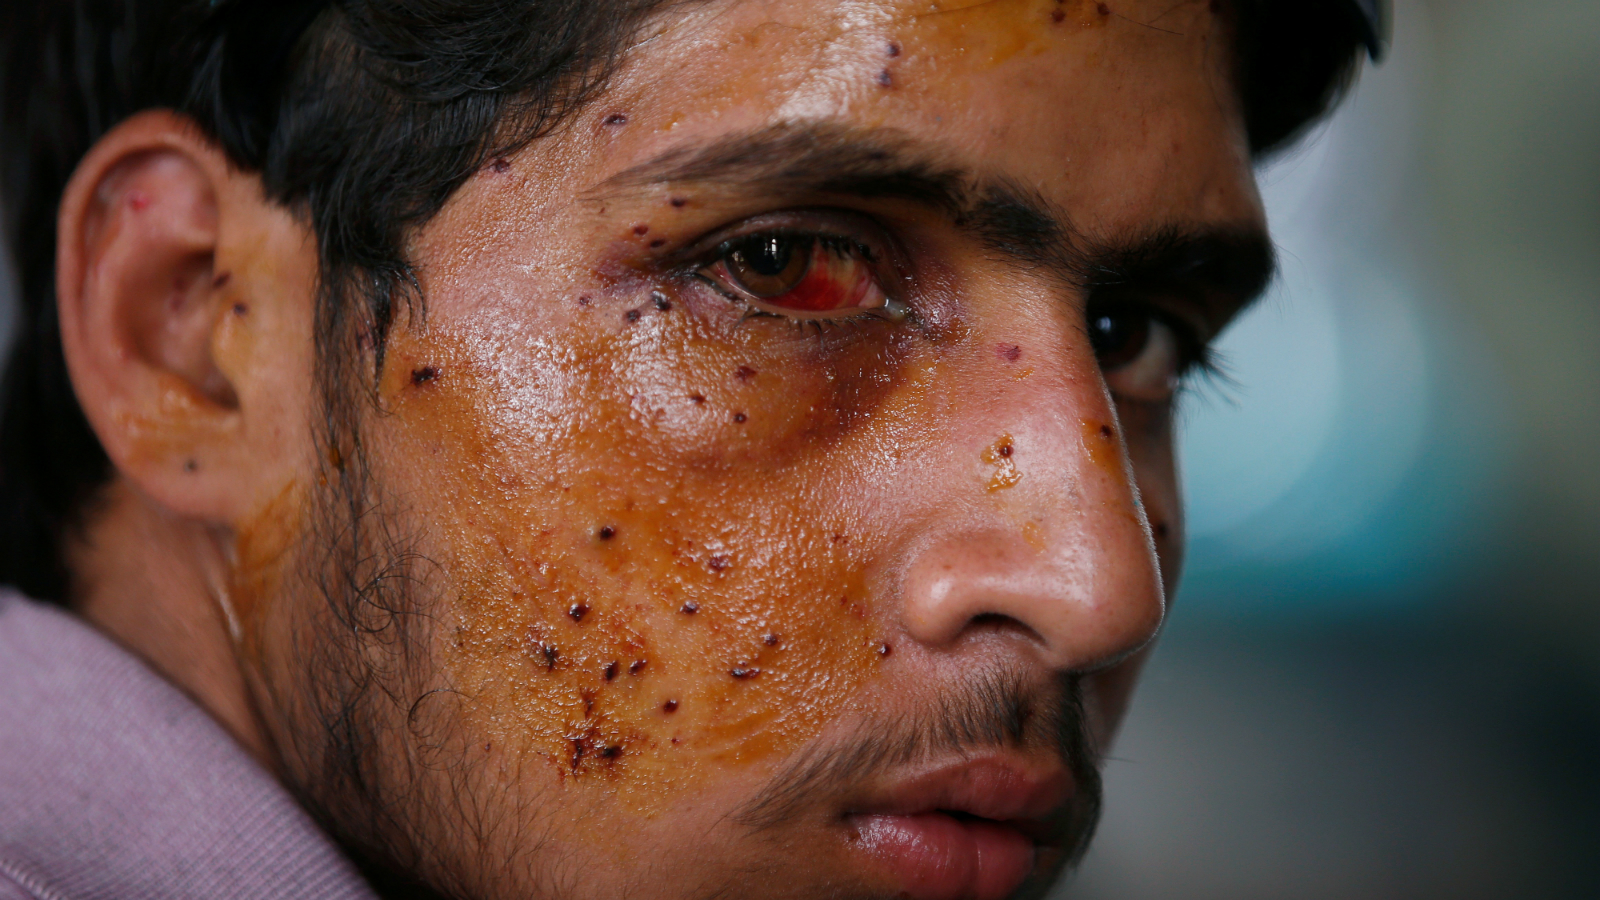 A man who was injured in clashes between Indian police and protesters sits inside a hospital, in Srinagar, July 14, 2016.